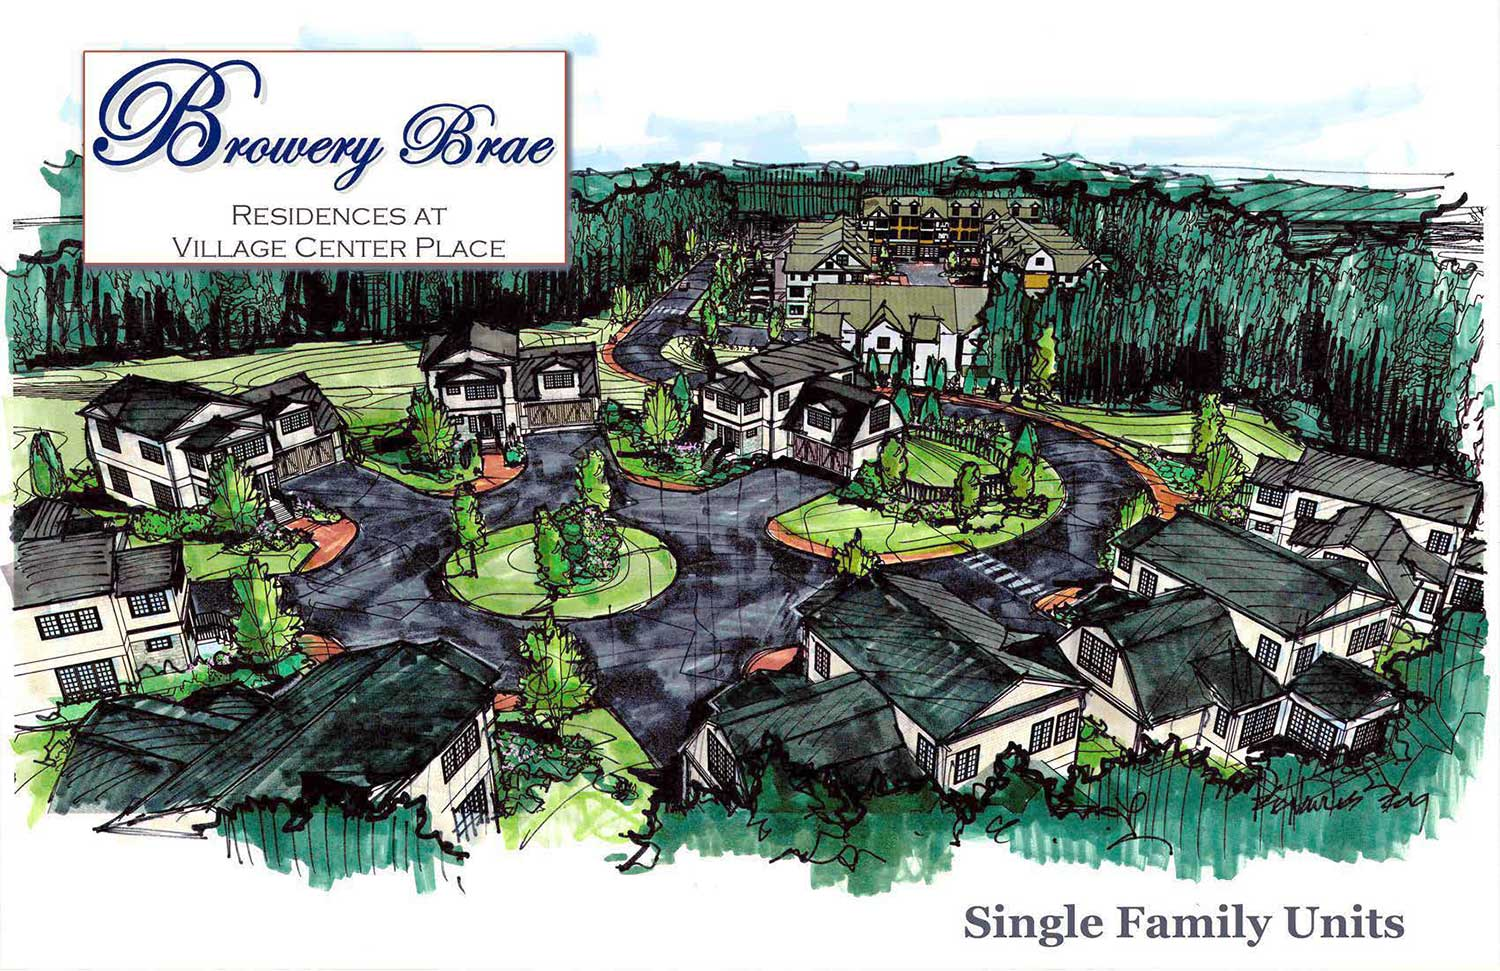 Browery Brae - Windham, NH